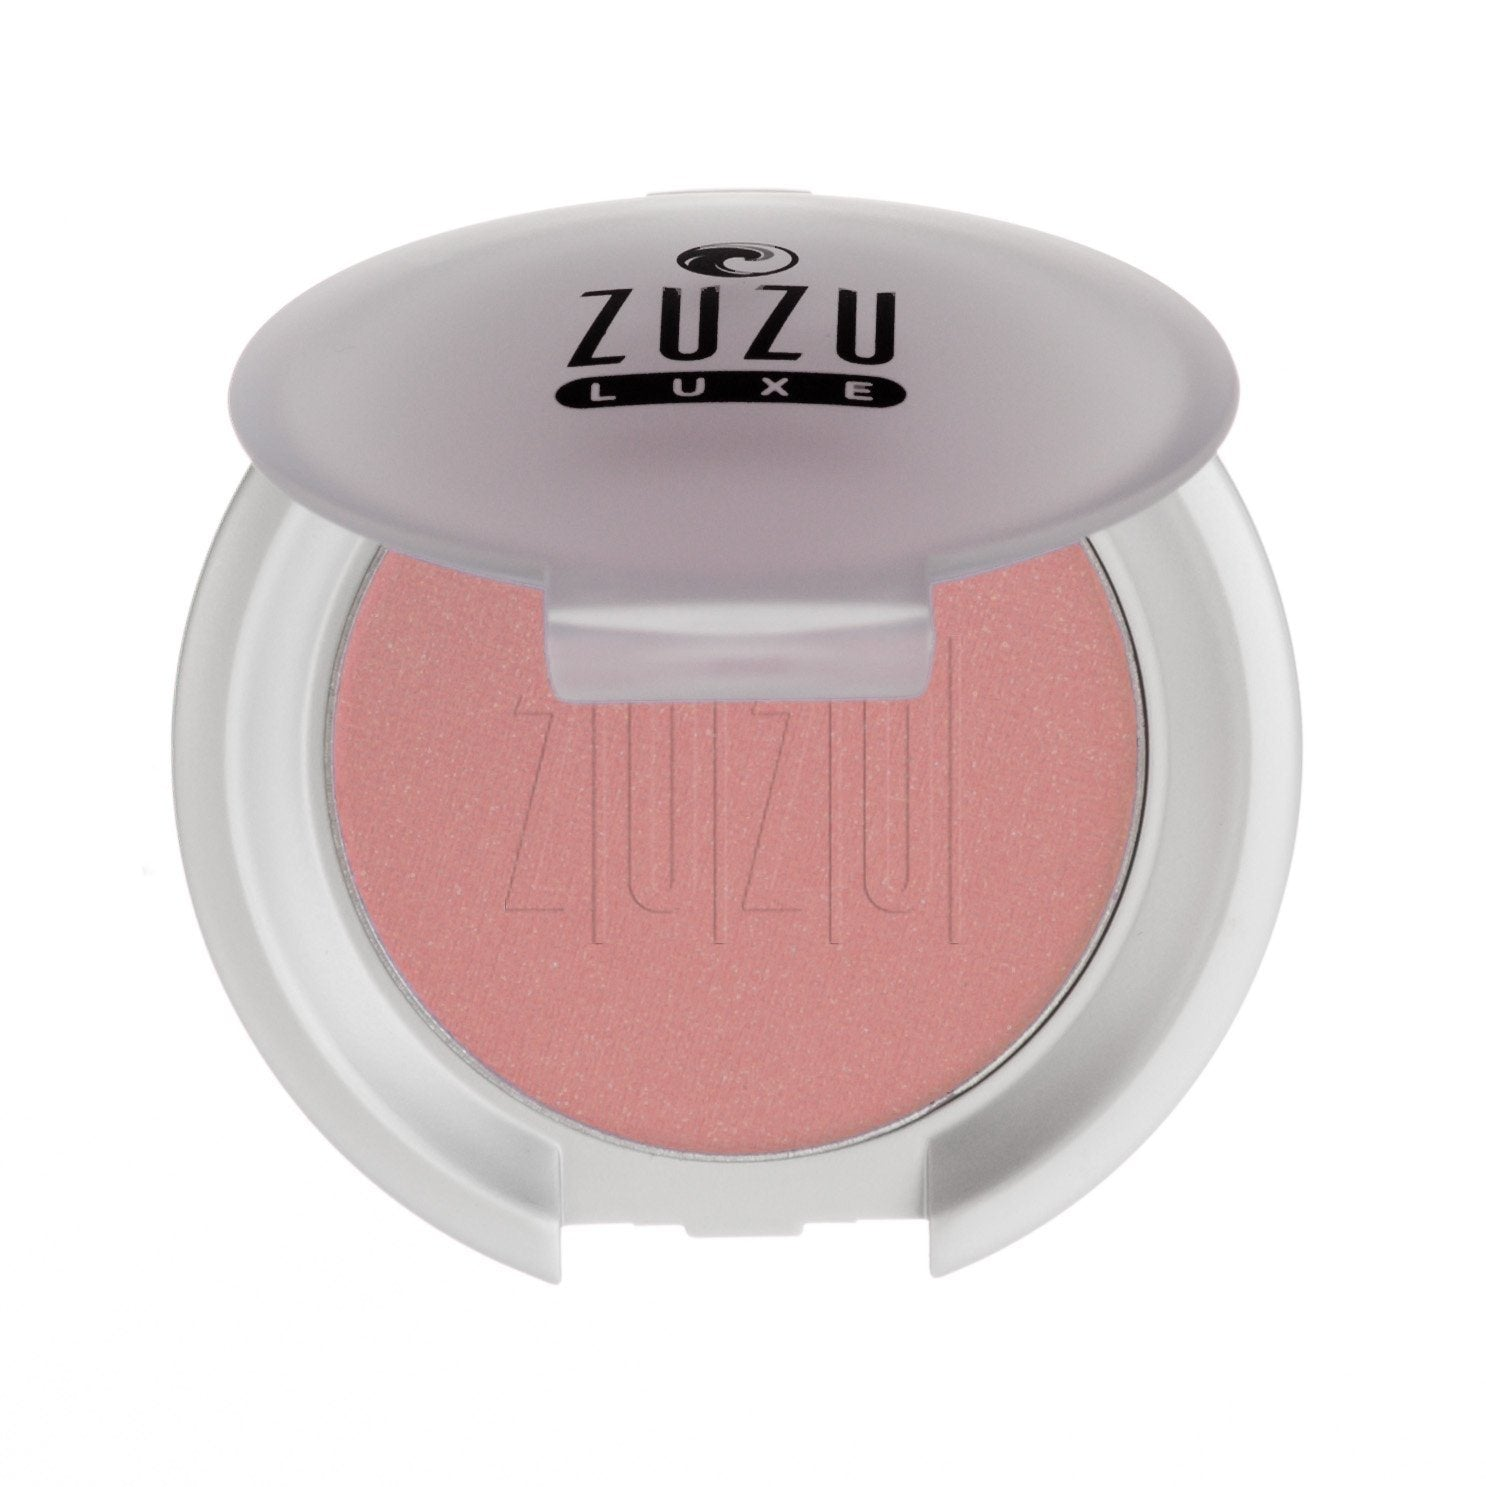 Beauty & Skin Care,Food & Drink - Zuzu Luxe - Gluten Free Blush, Fascination